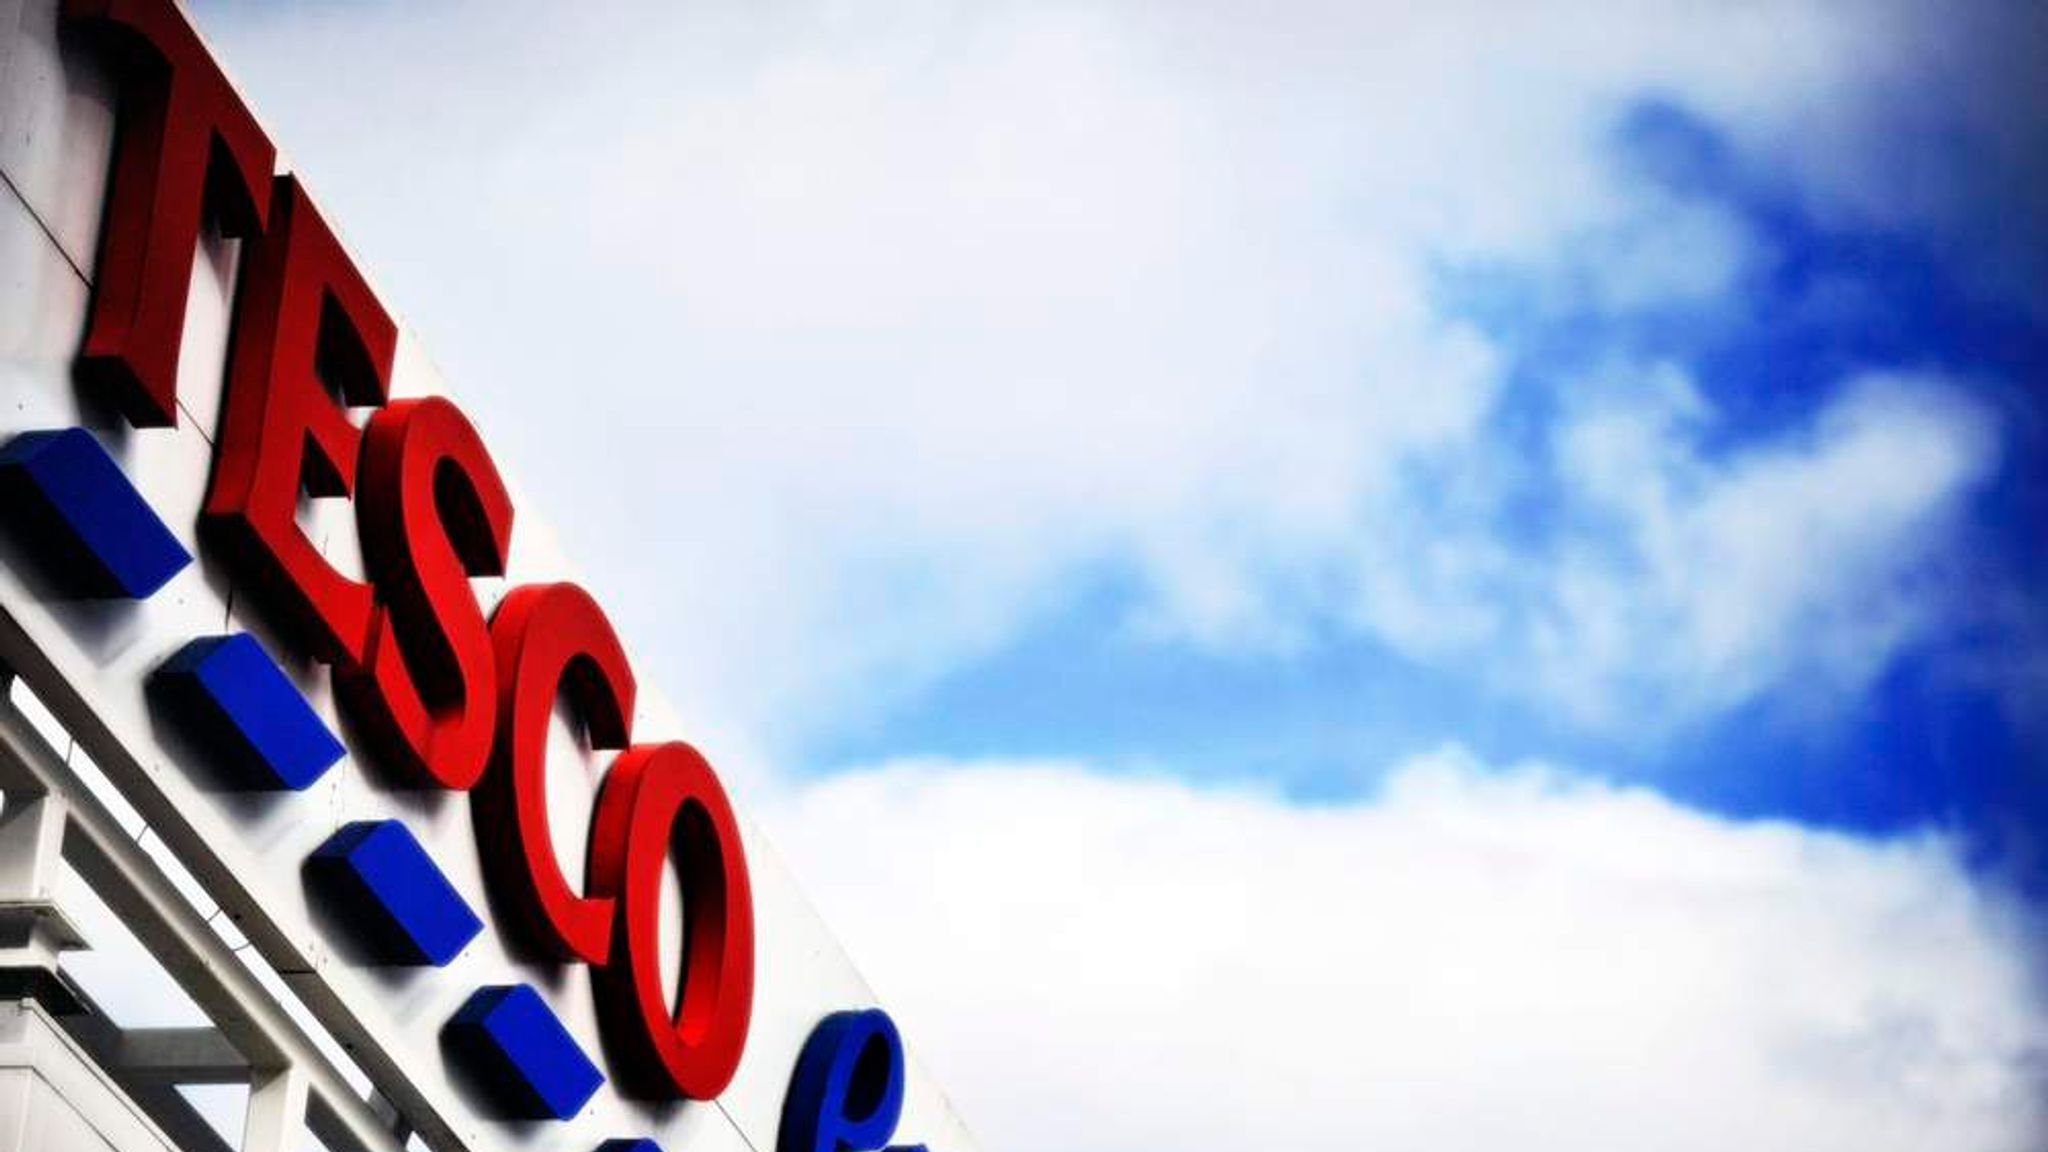 tesco accounting policies Tesco's accounting error - what the analysts say or is it that two different ceos have entirely different views on accounting policy tesco has already.